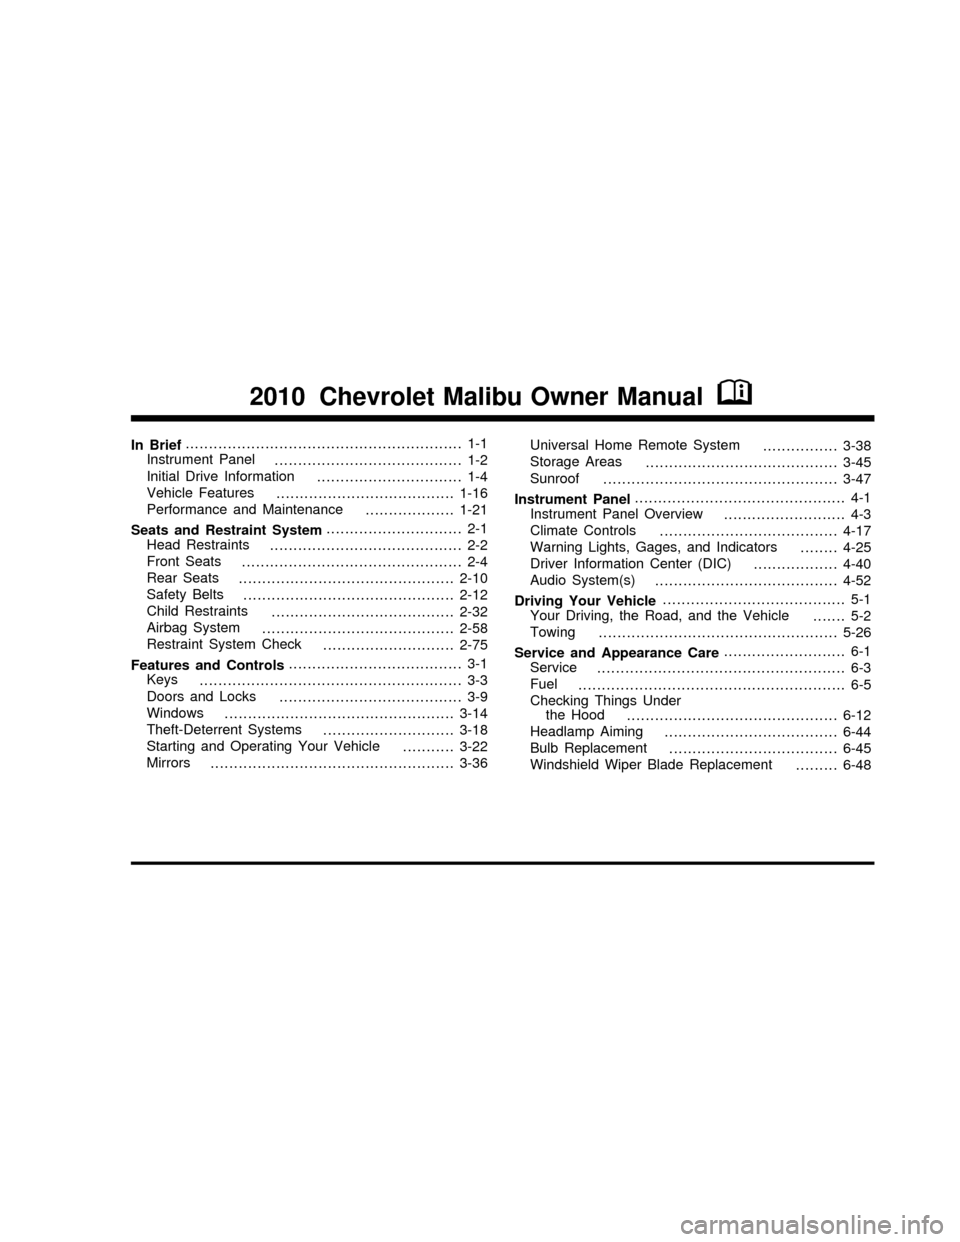 CHEVROLET MALIBU 2010 7.G Owners Manual (451 Pages)